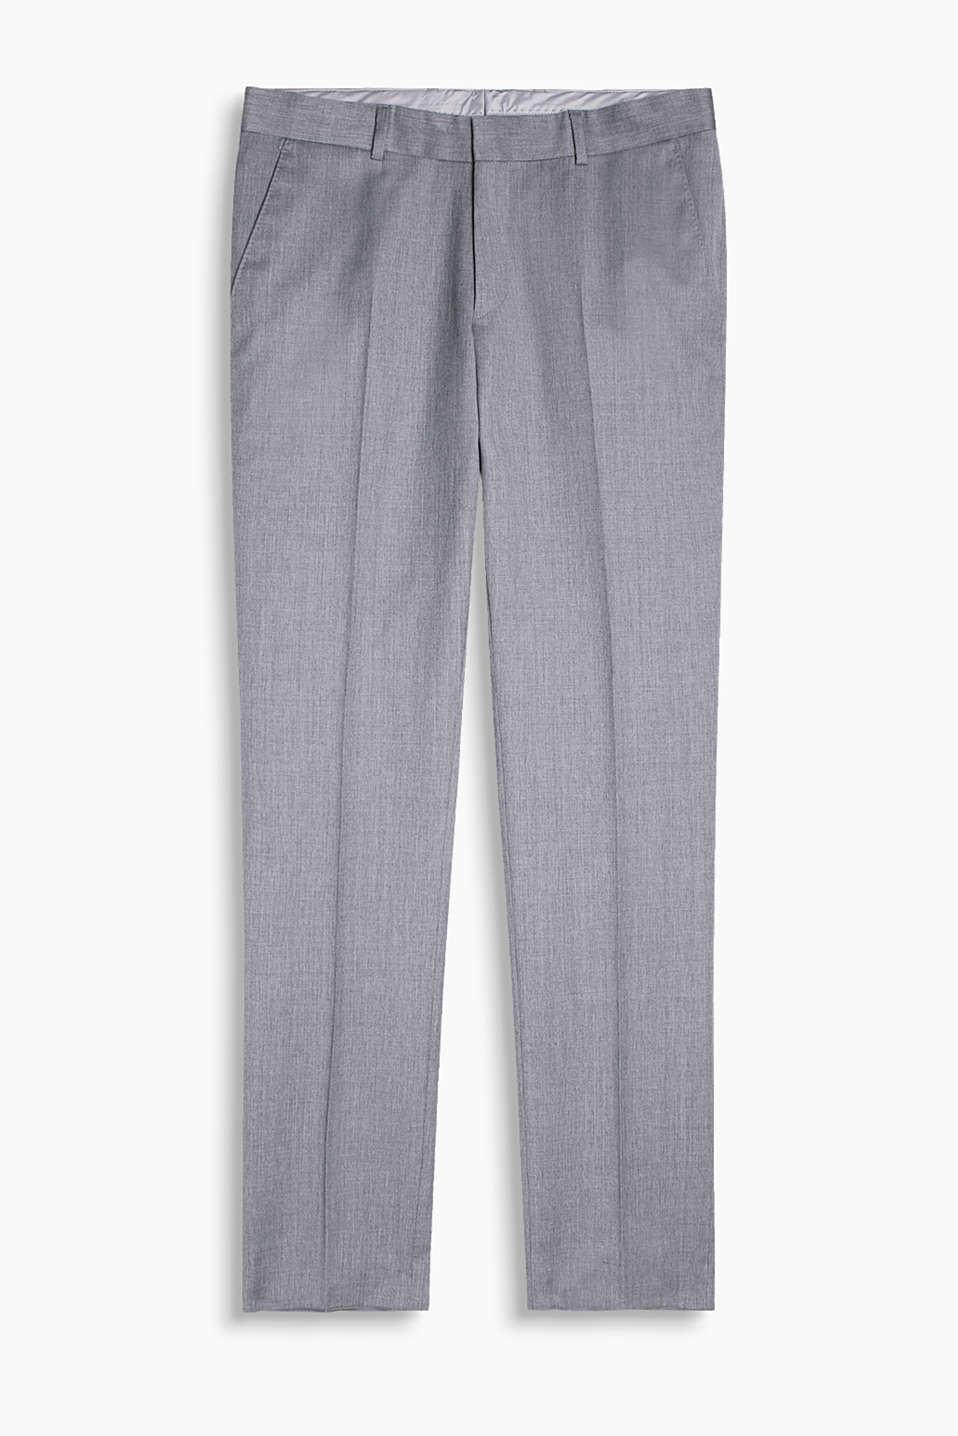 In a summery style: premium suit trousers with waist pleats